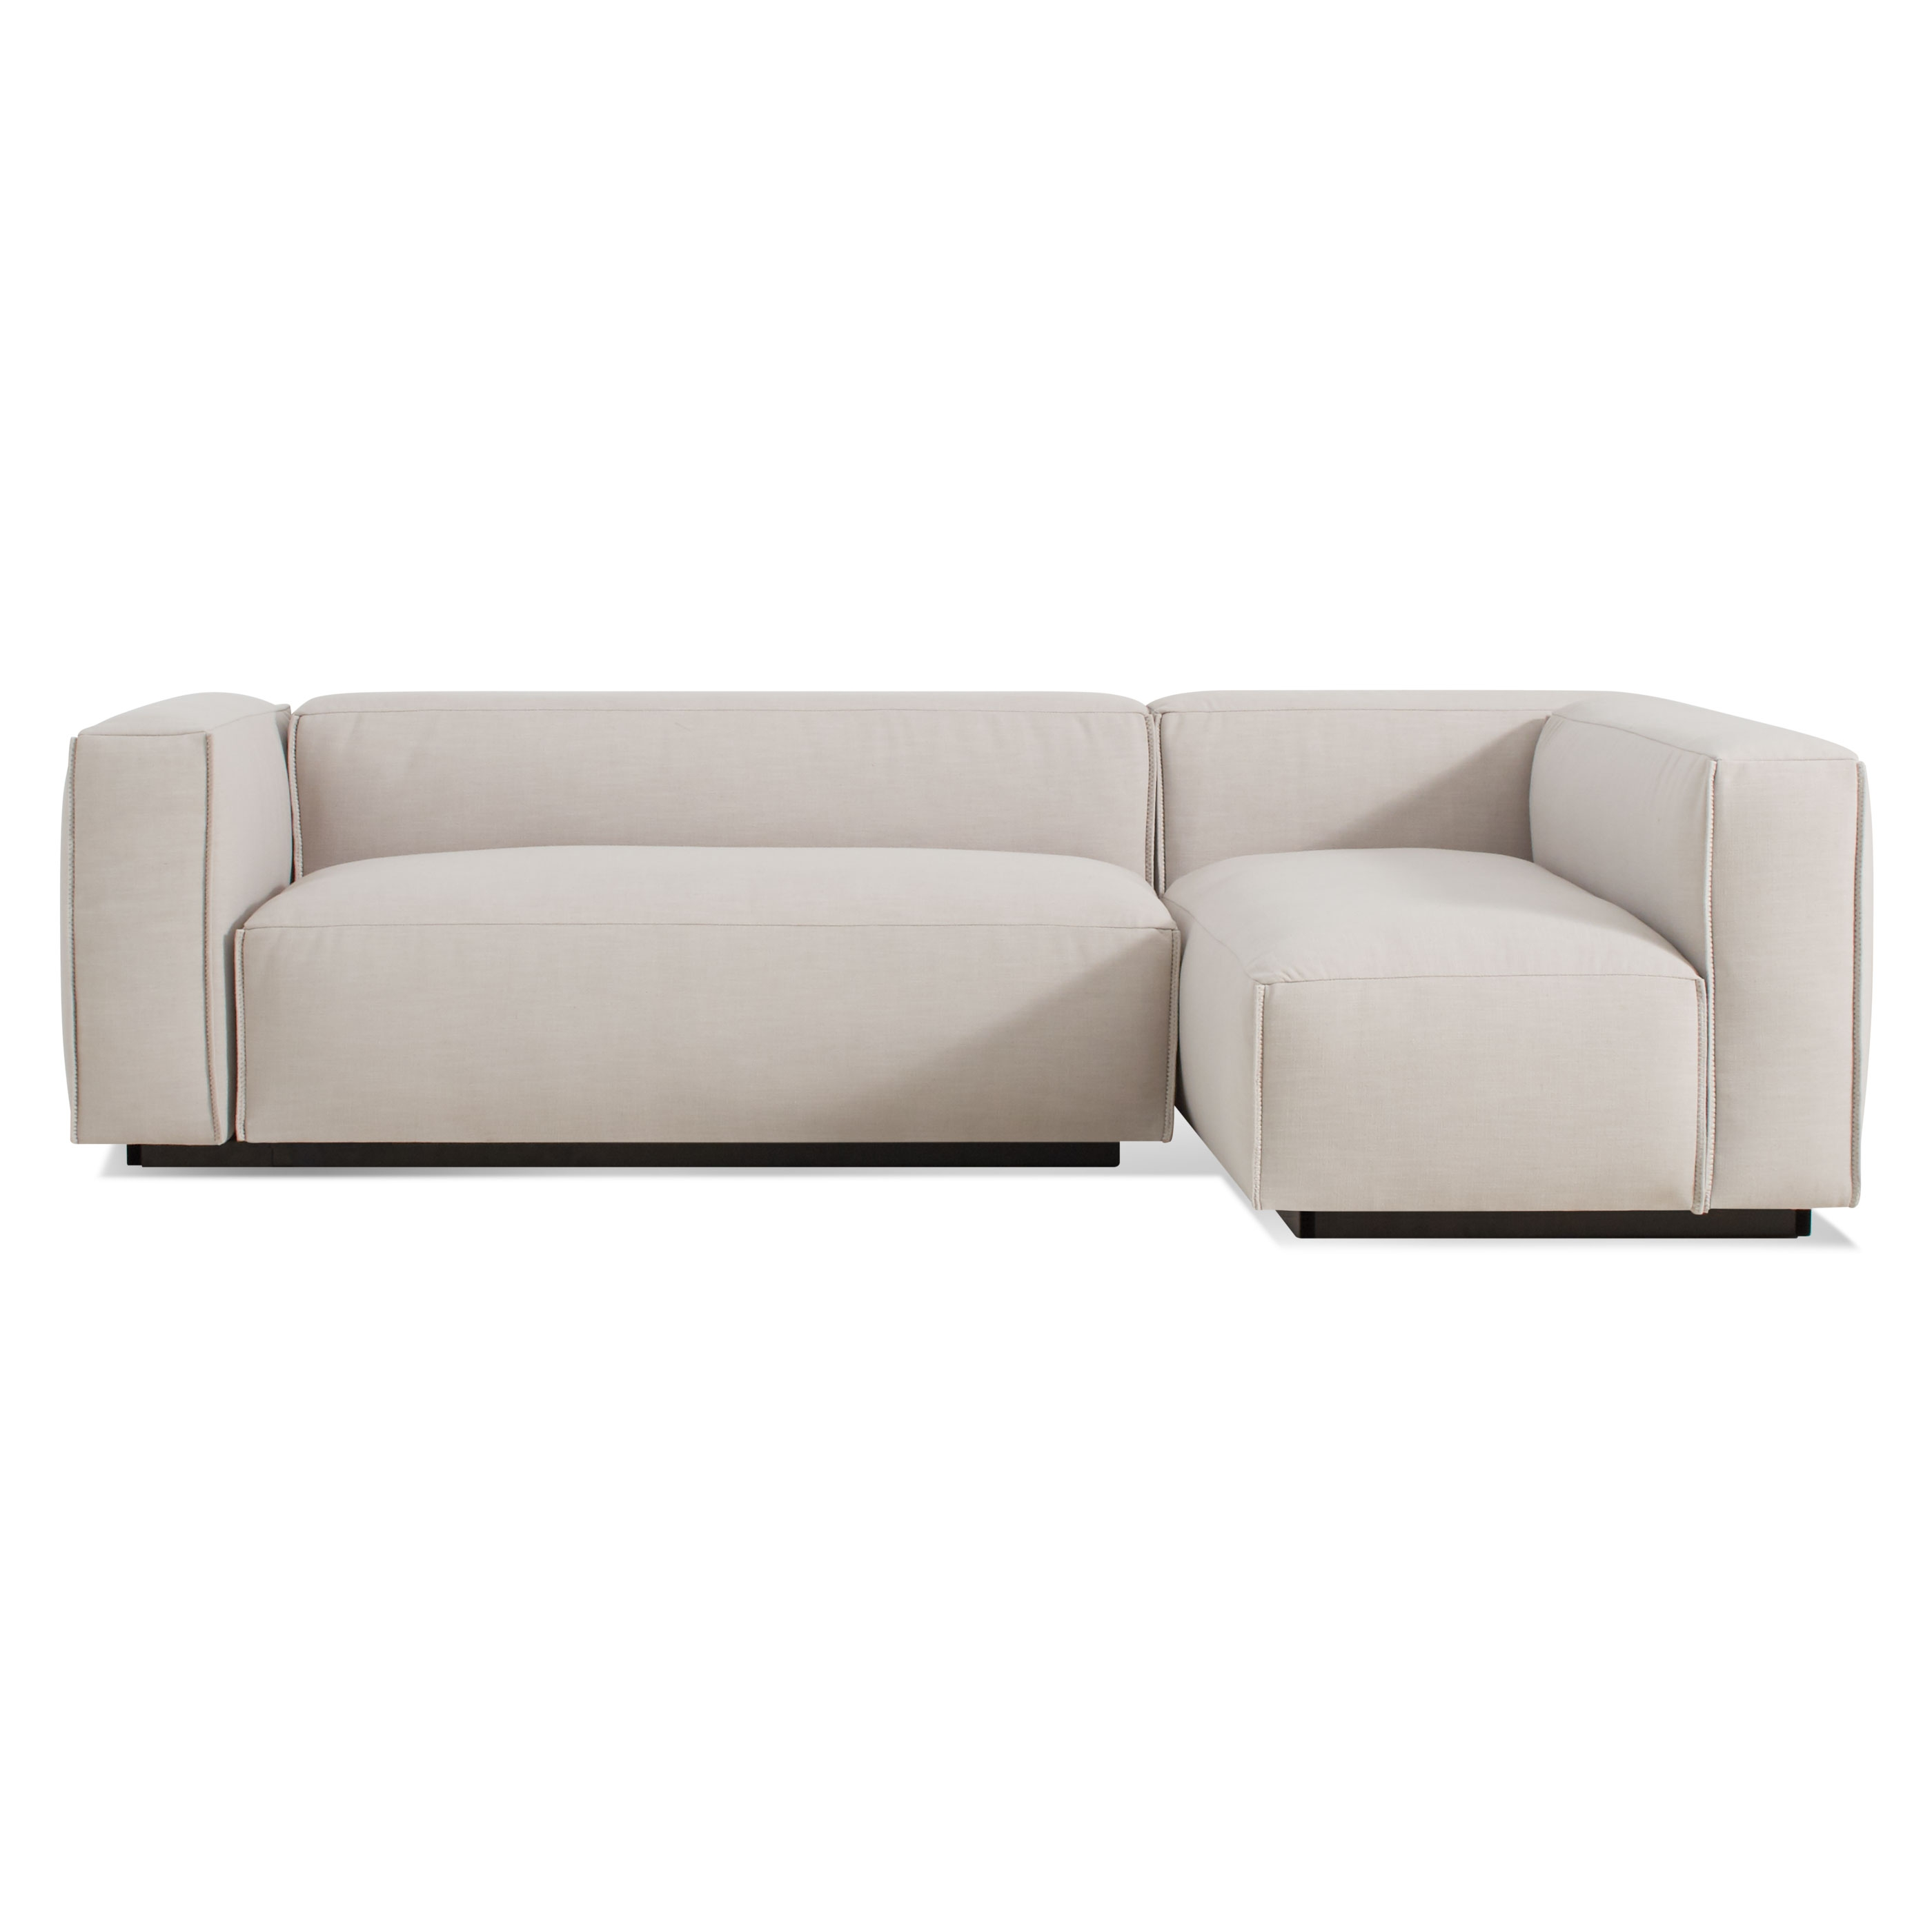 Cleon Small Modern Sectional Sofa Blu Dot Intended For Small Sectional Sofa (View 4 of 15)